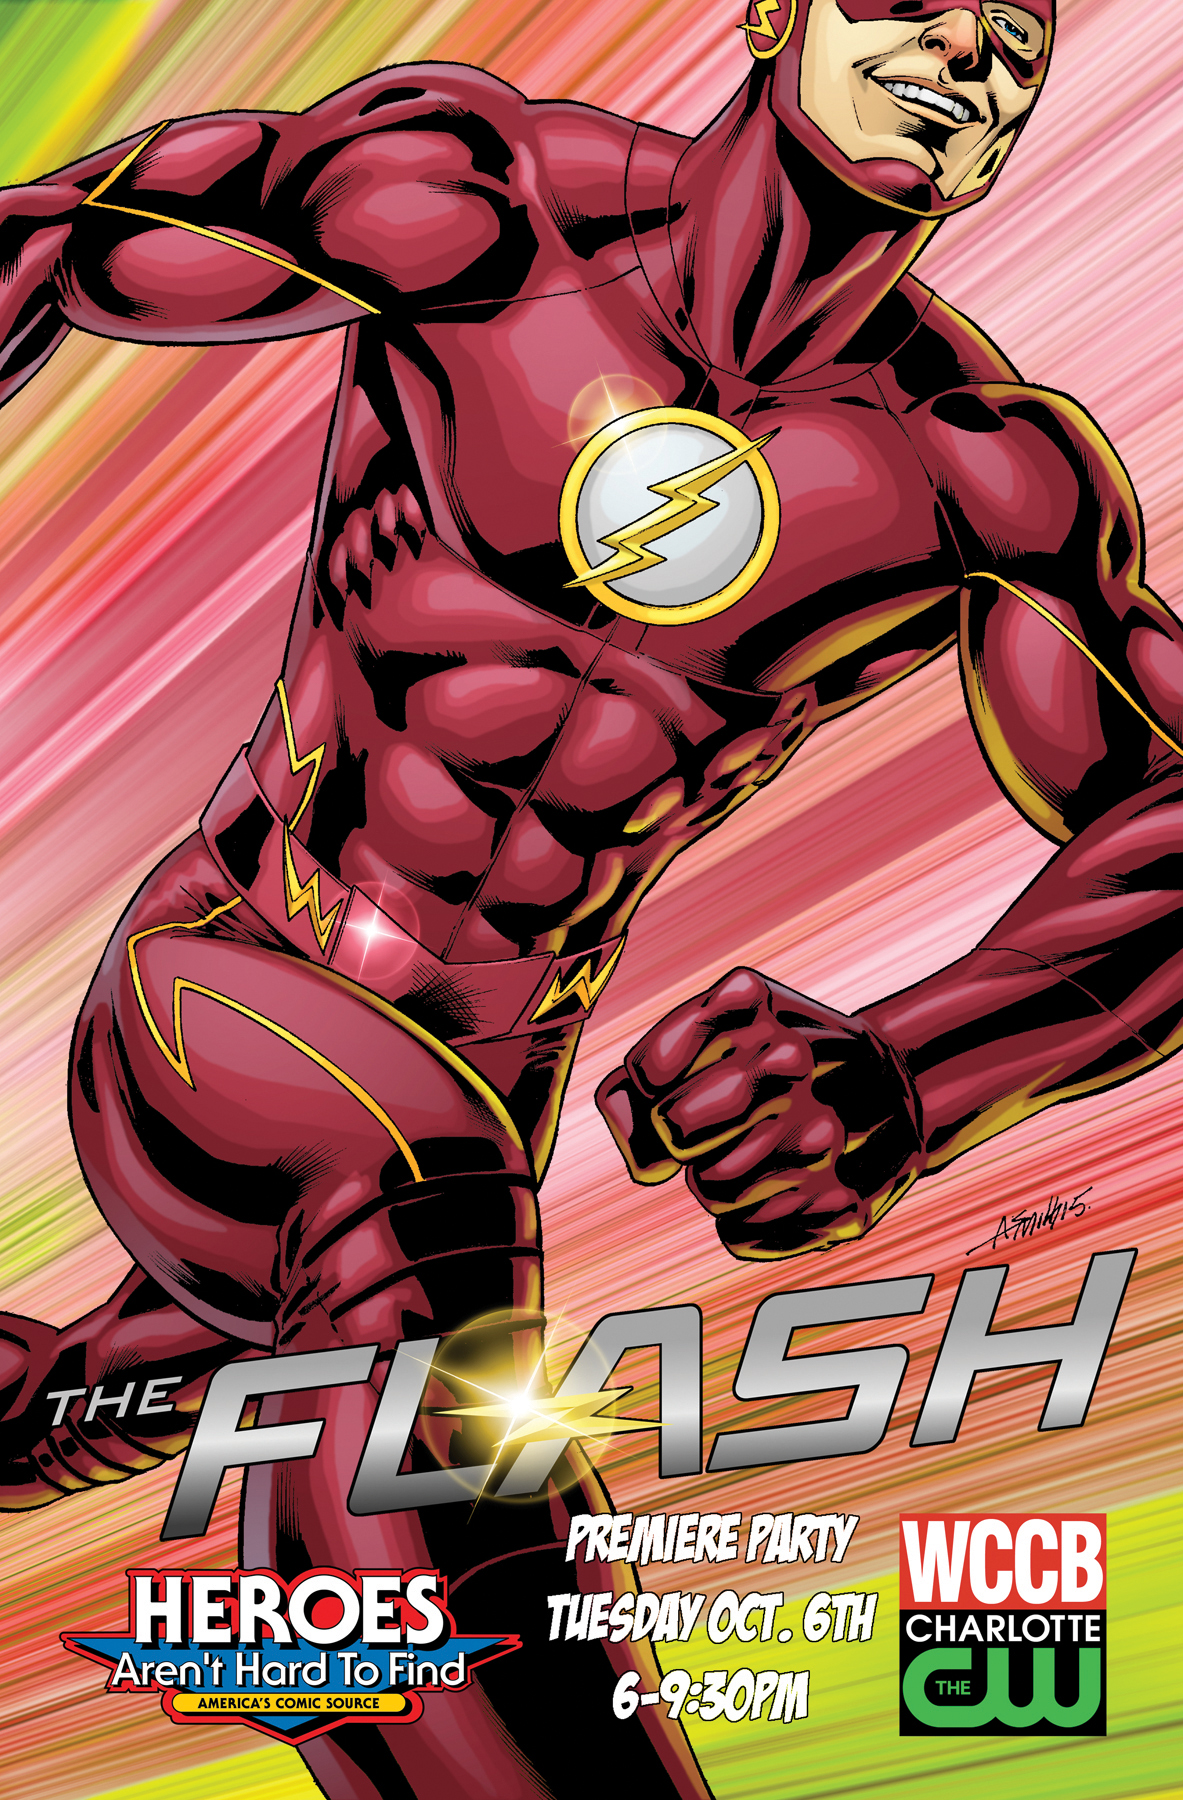 Flash TV poster for Season Premier party